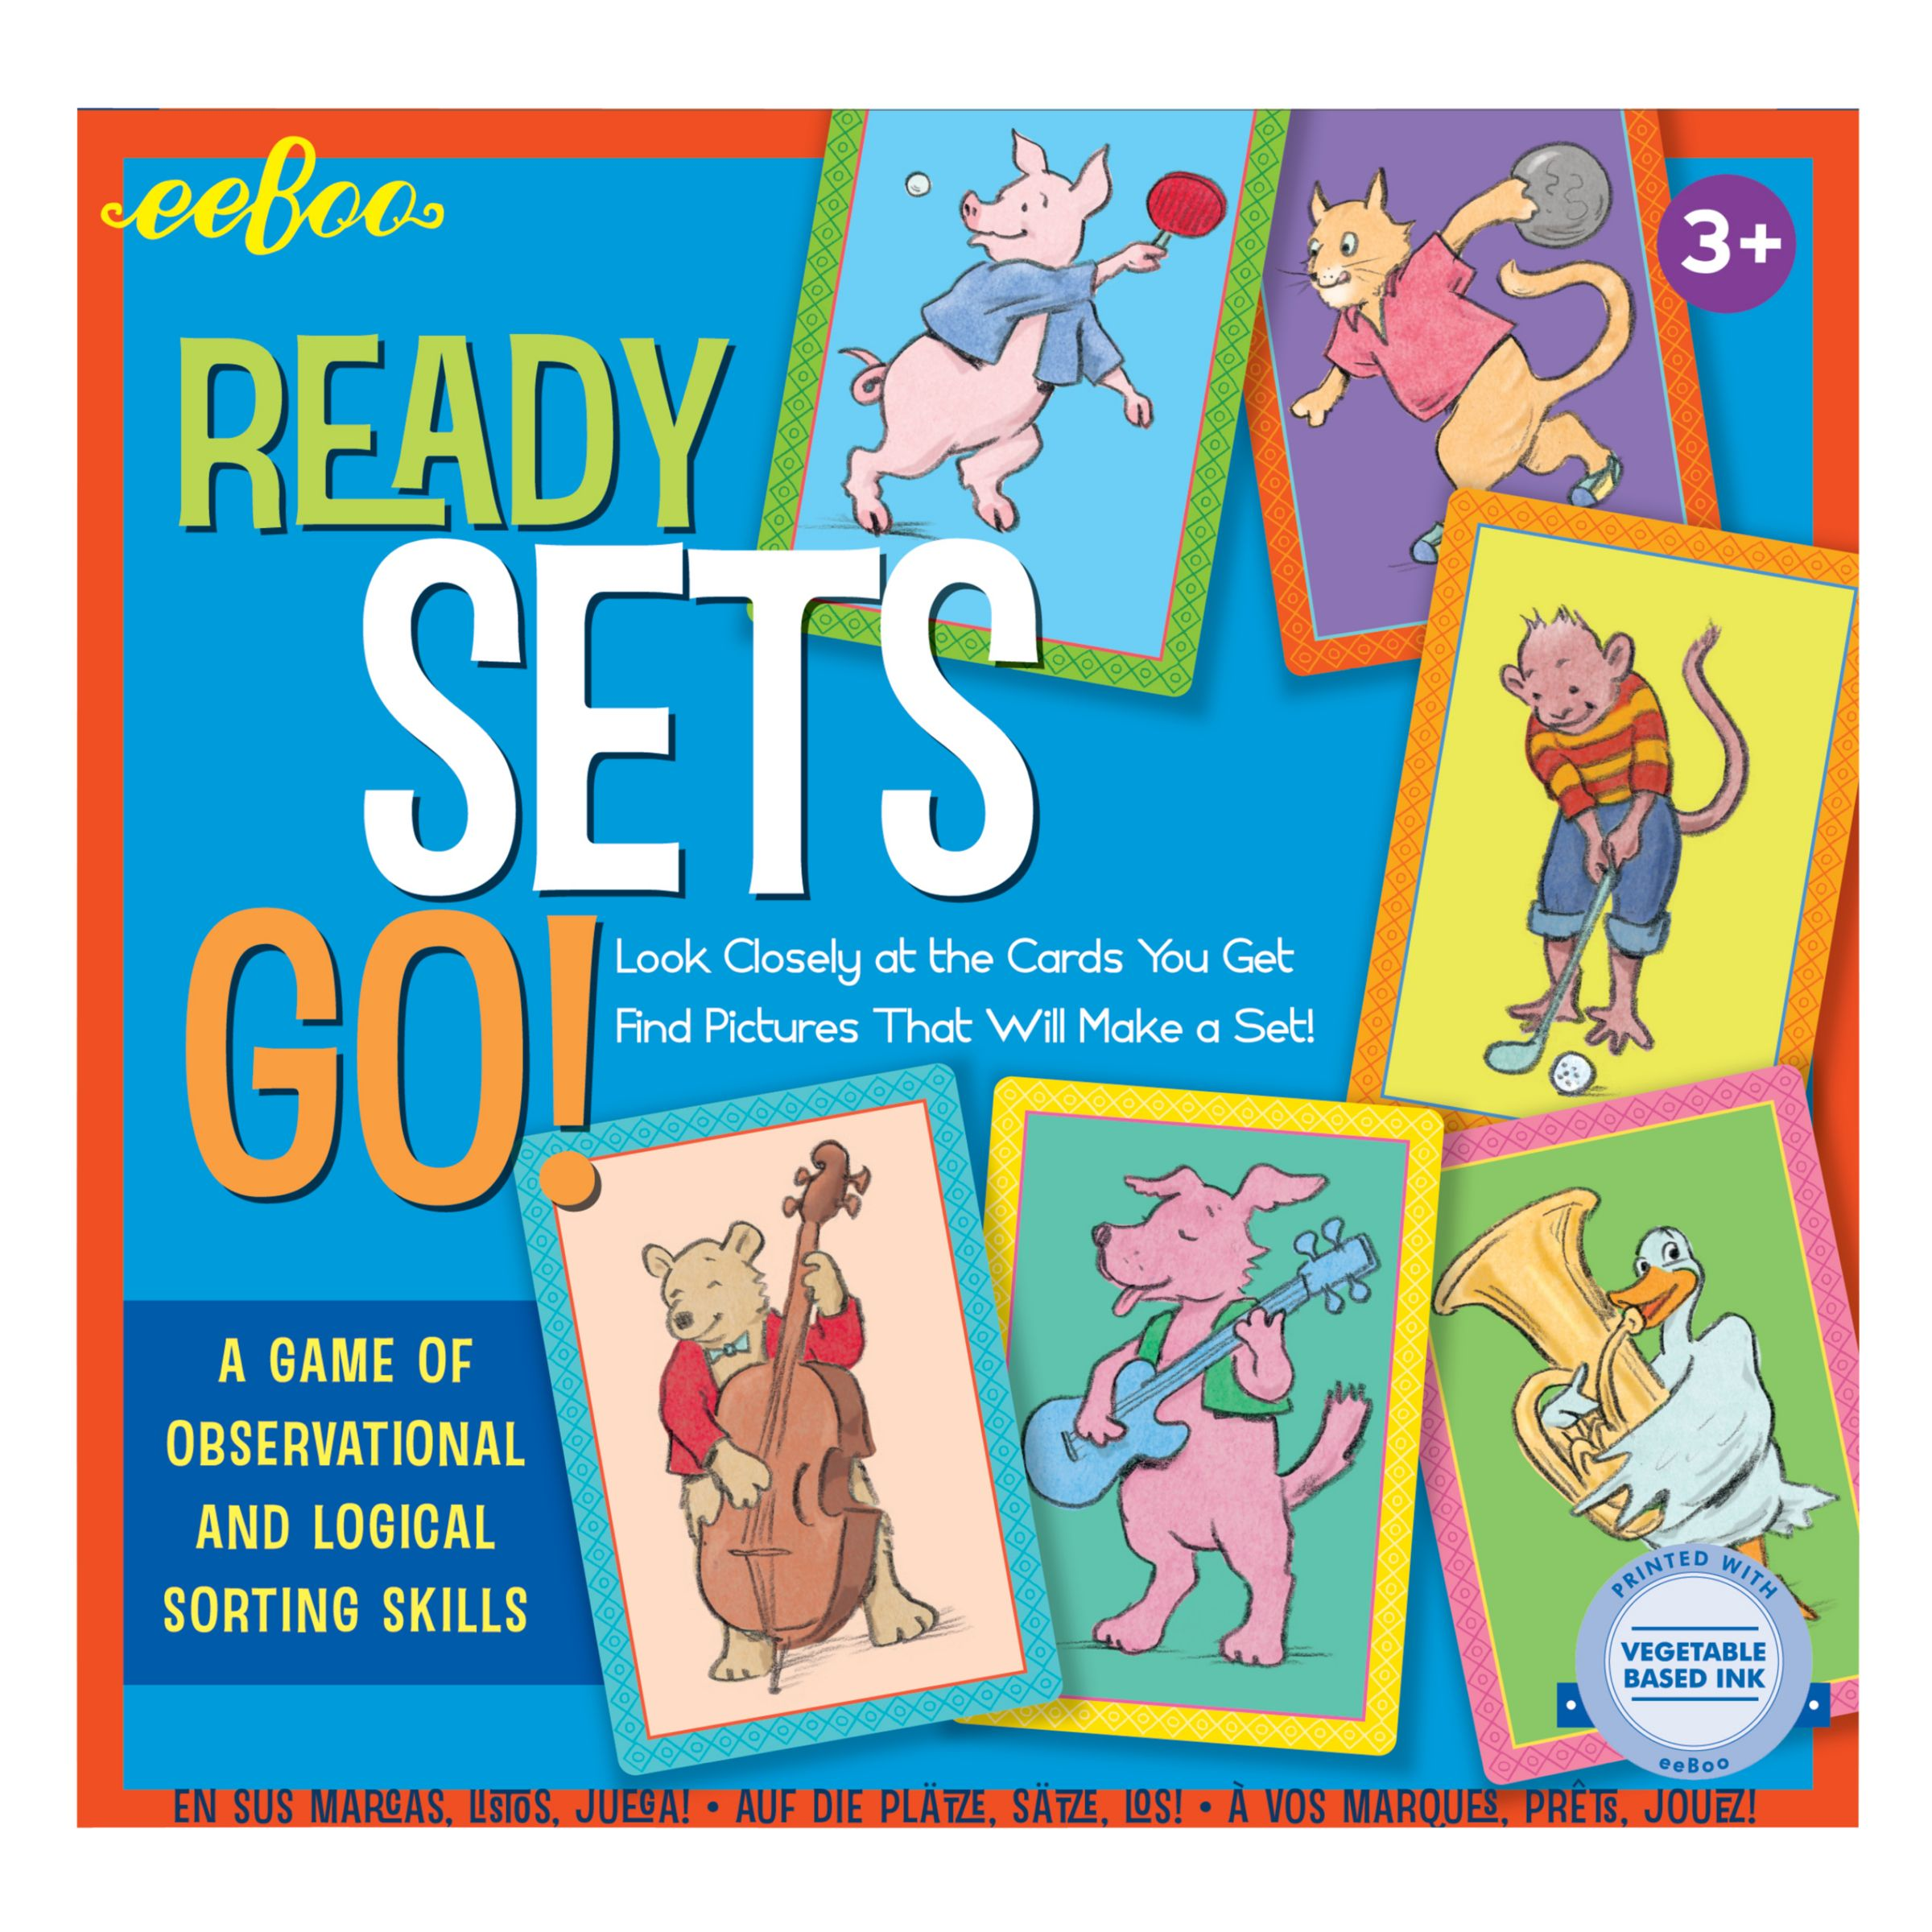 Eeboo Eeboo Ready Sets Go! Game